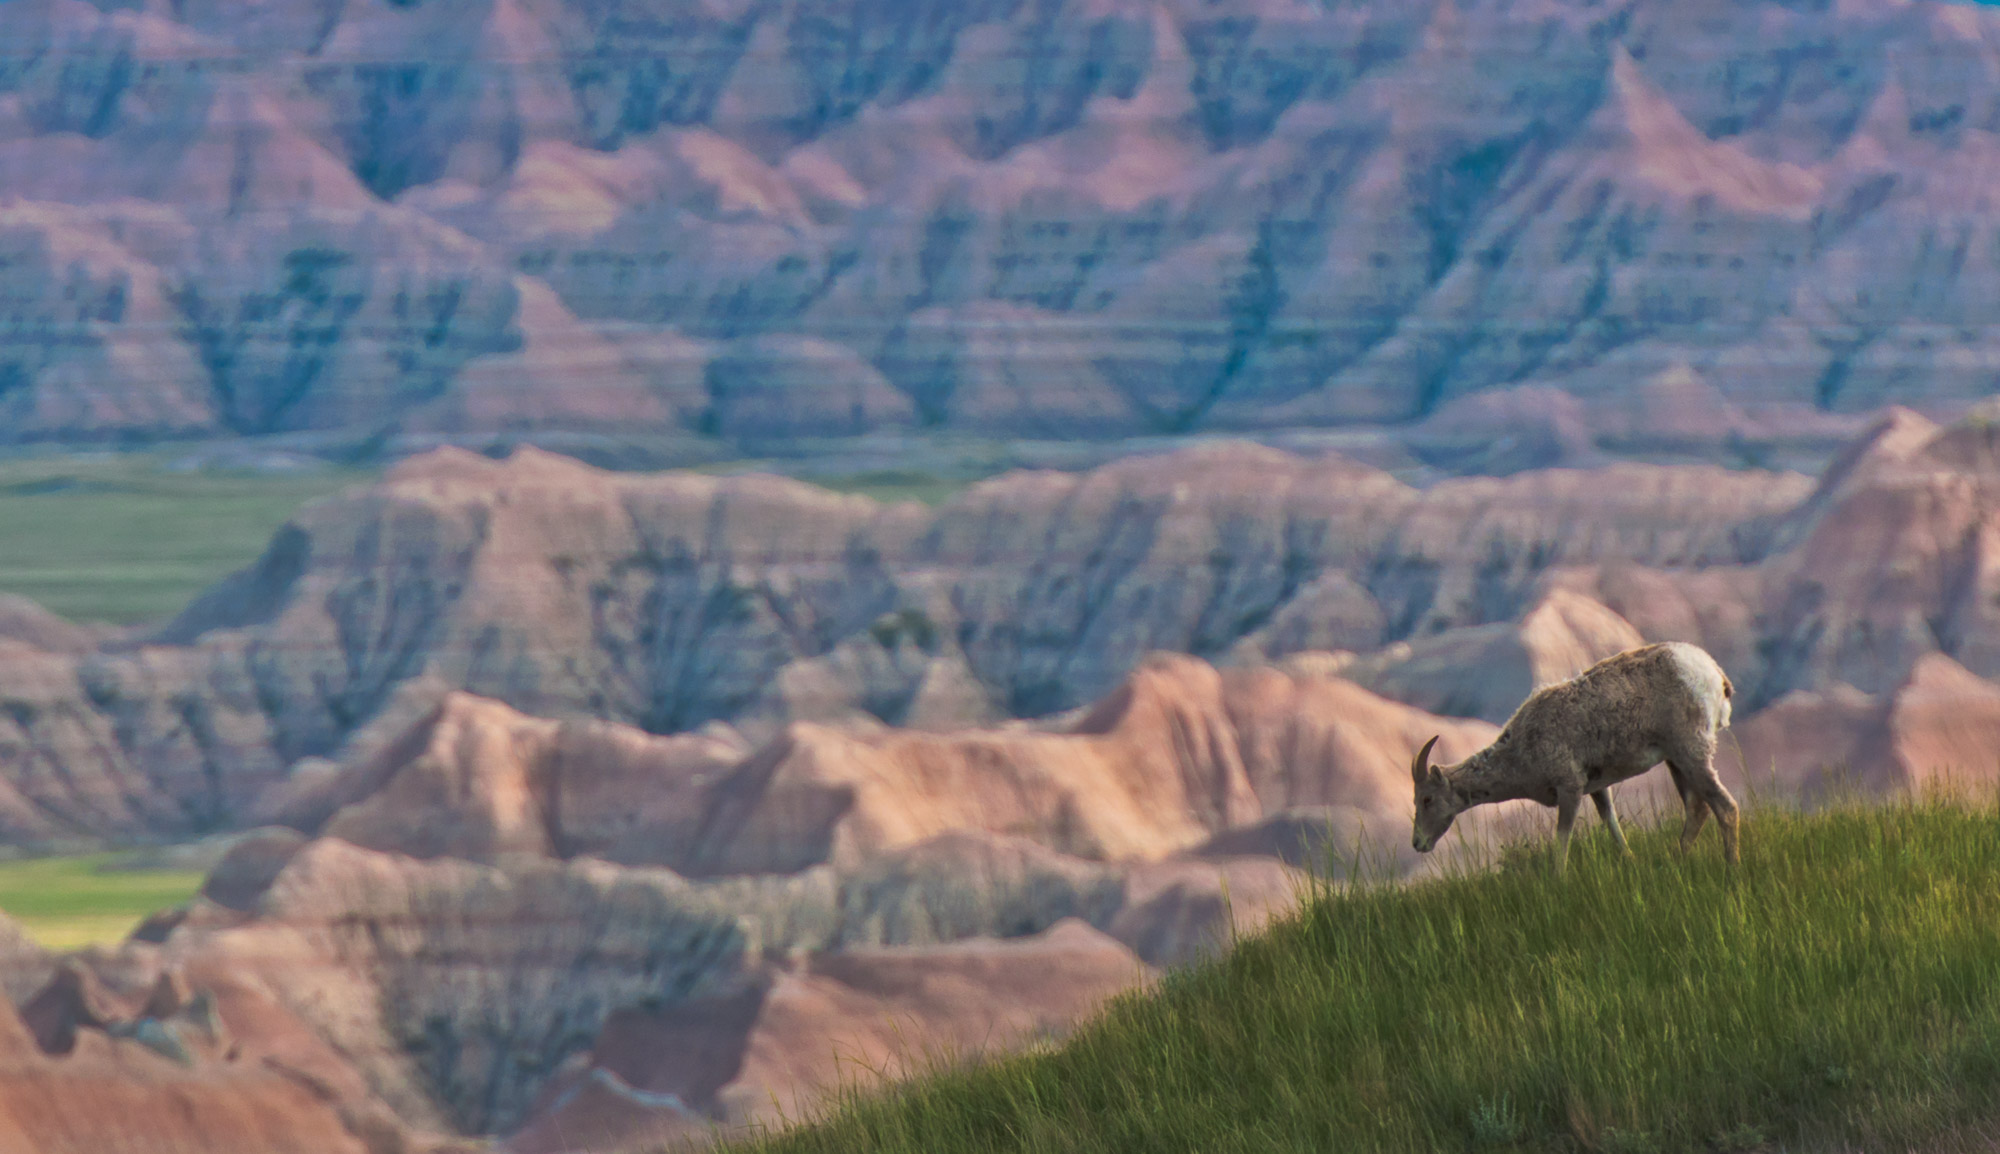 the badlands national park a monument of south dakota Badlands national park does not offer reservations through recreationgov please take a look at the area details below for more information about visiting this location enjoy your visit badlands national park is located 75 miles east of rapid city, south dakota physical addresses for gps park.